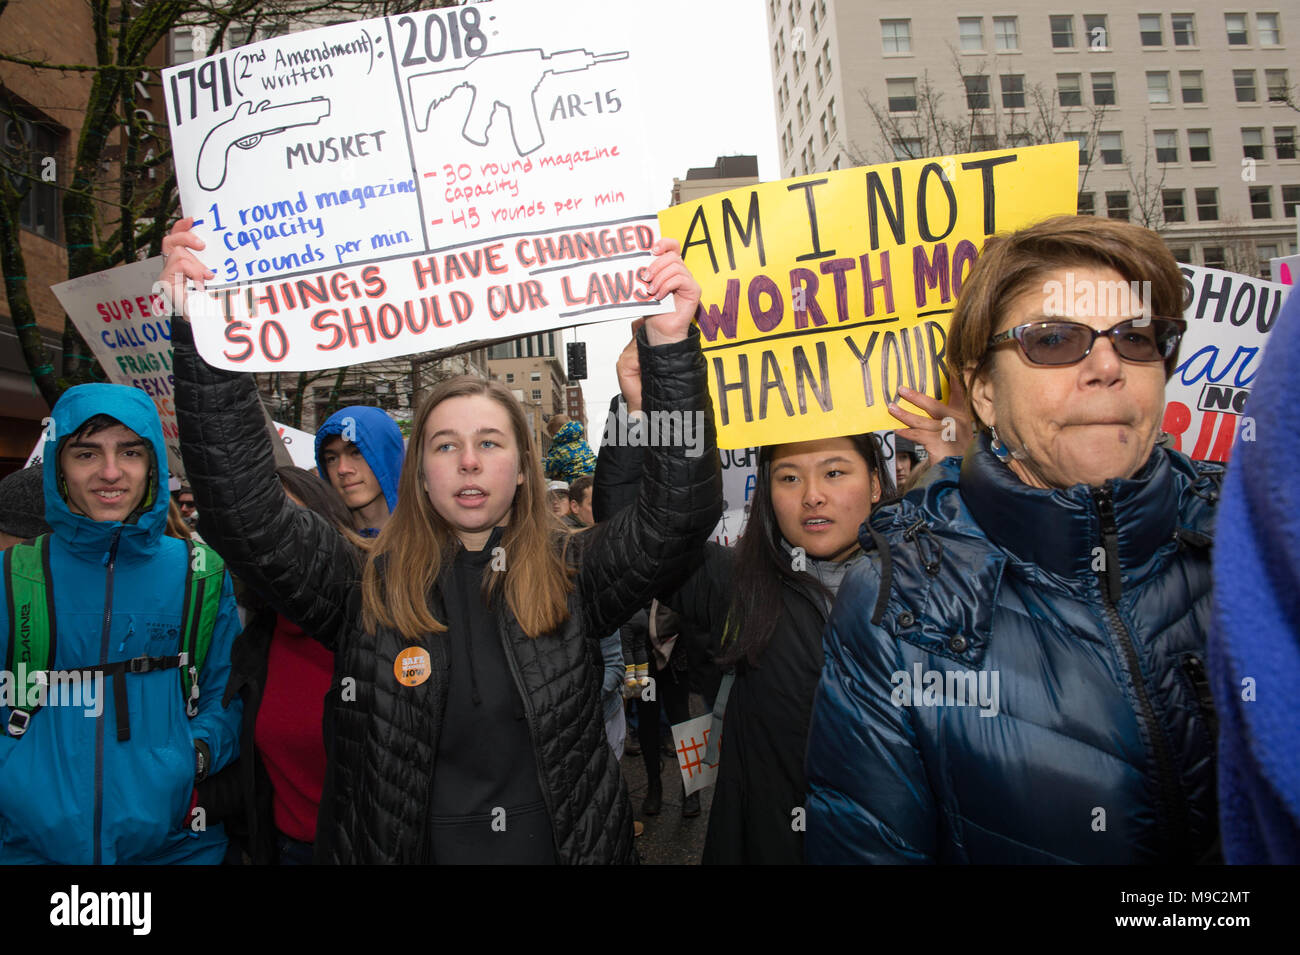 Portland, Oregon, USA, 24.03.18: Portlanders turn out in force for the March for Our Lives protest Credit: Nick Gammon/Alamy Live News Stock Photo